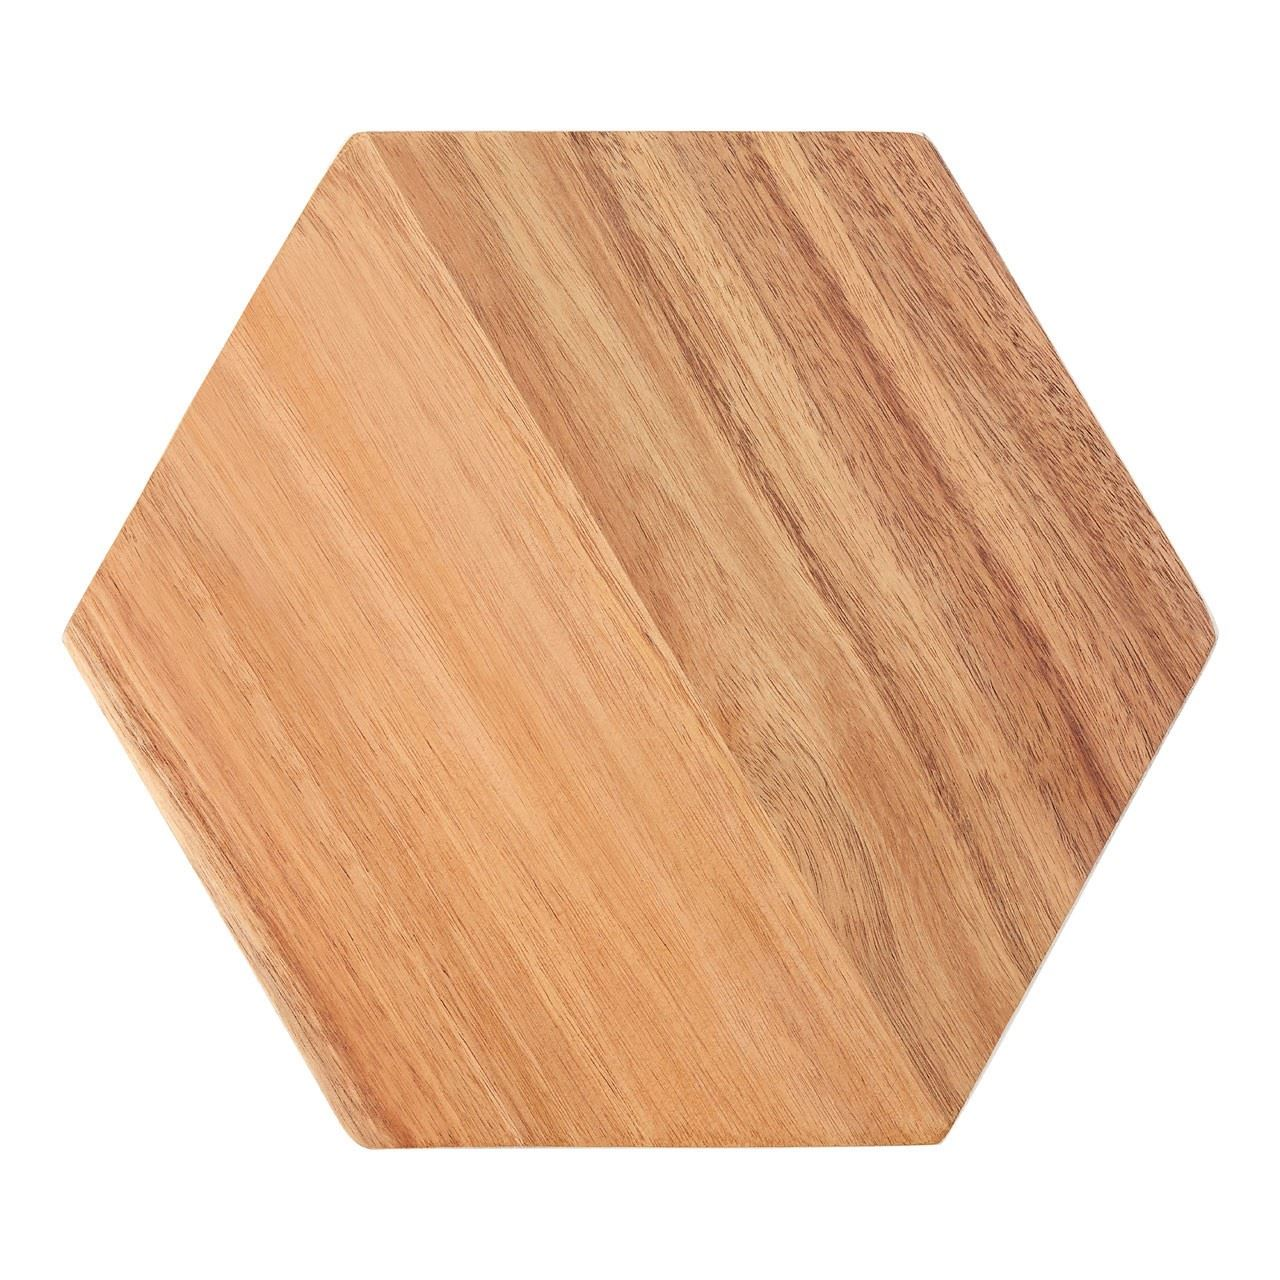 Chopping-Boards-Wooden-Cutting-Serving-Naturally-Antibacterial thumbnail 18